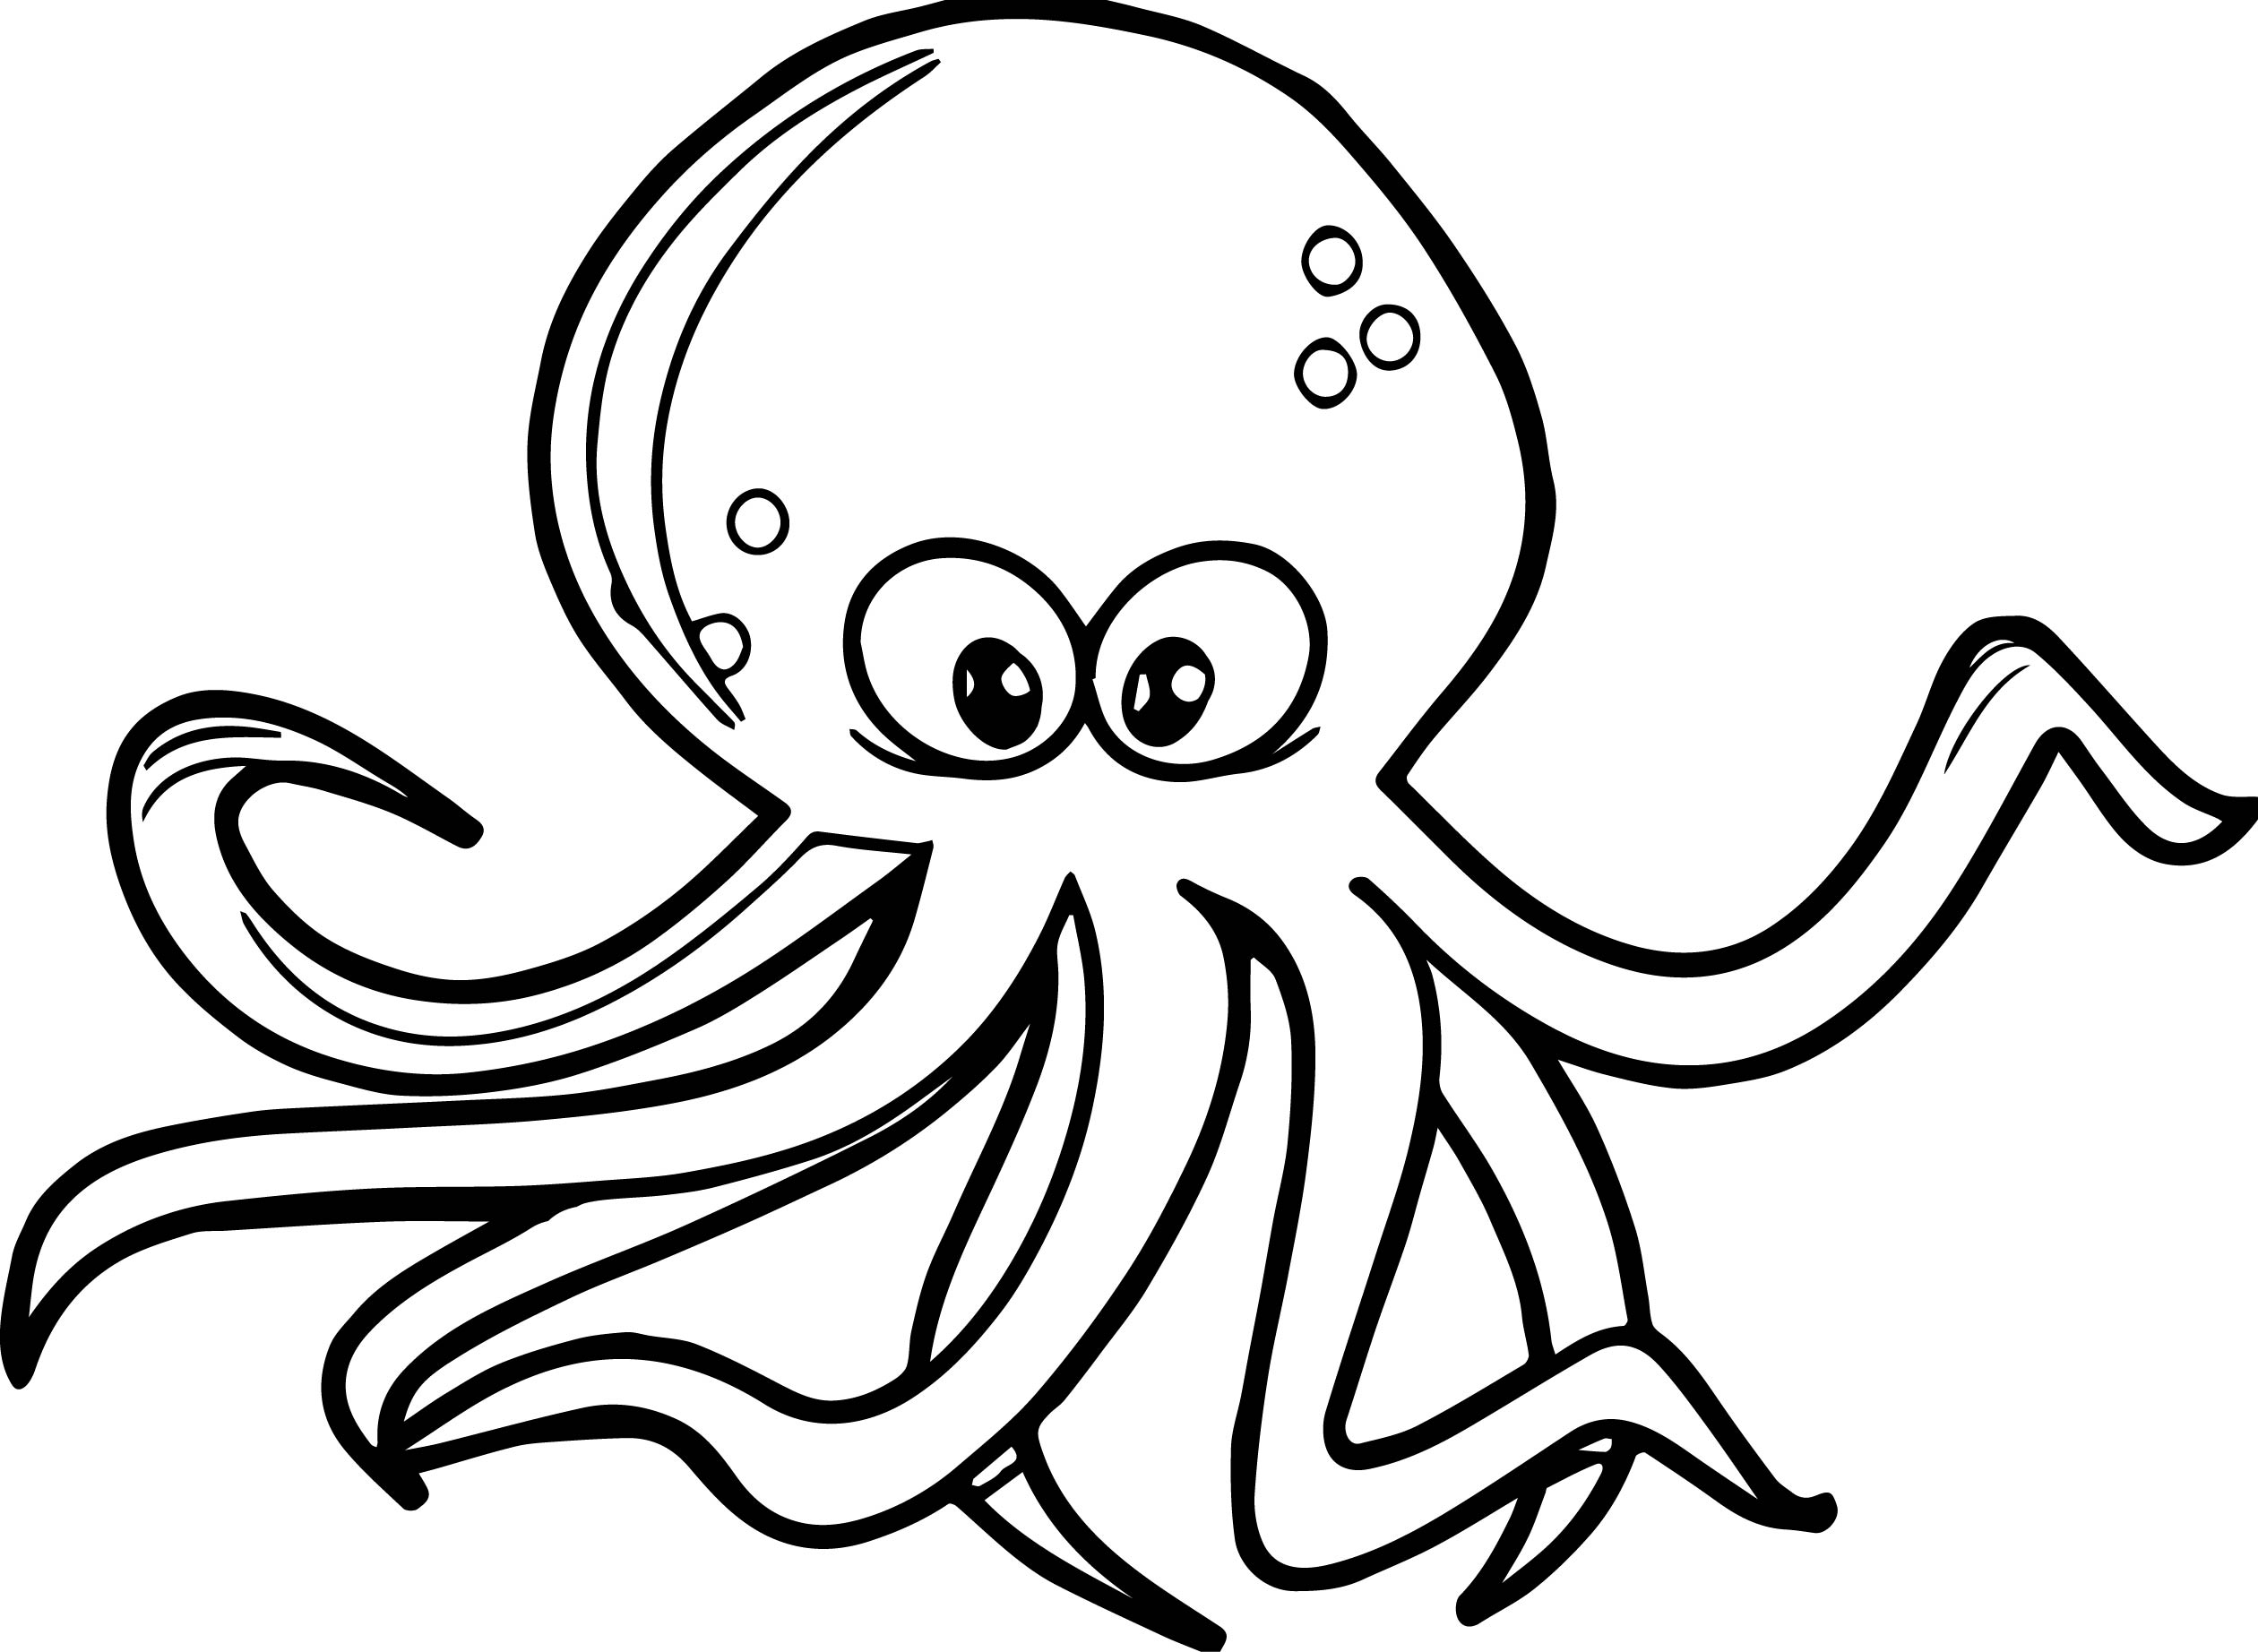 cartoon octopus coloring pages octopus cartoon coloring page wecoloringpagecom coloring octopus cartoon pages